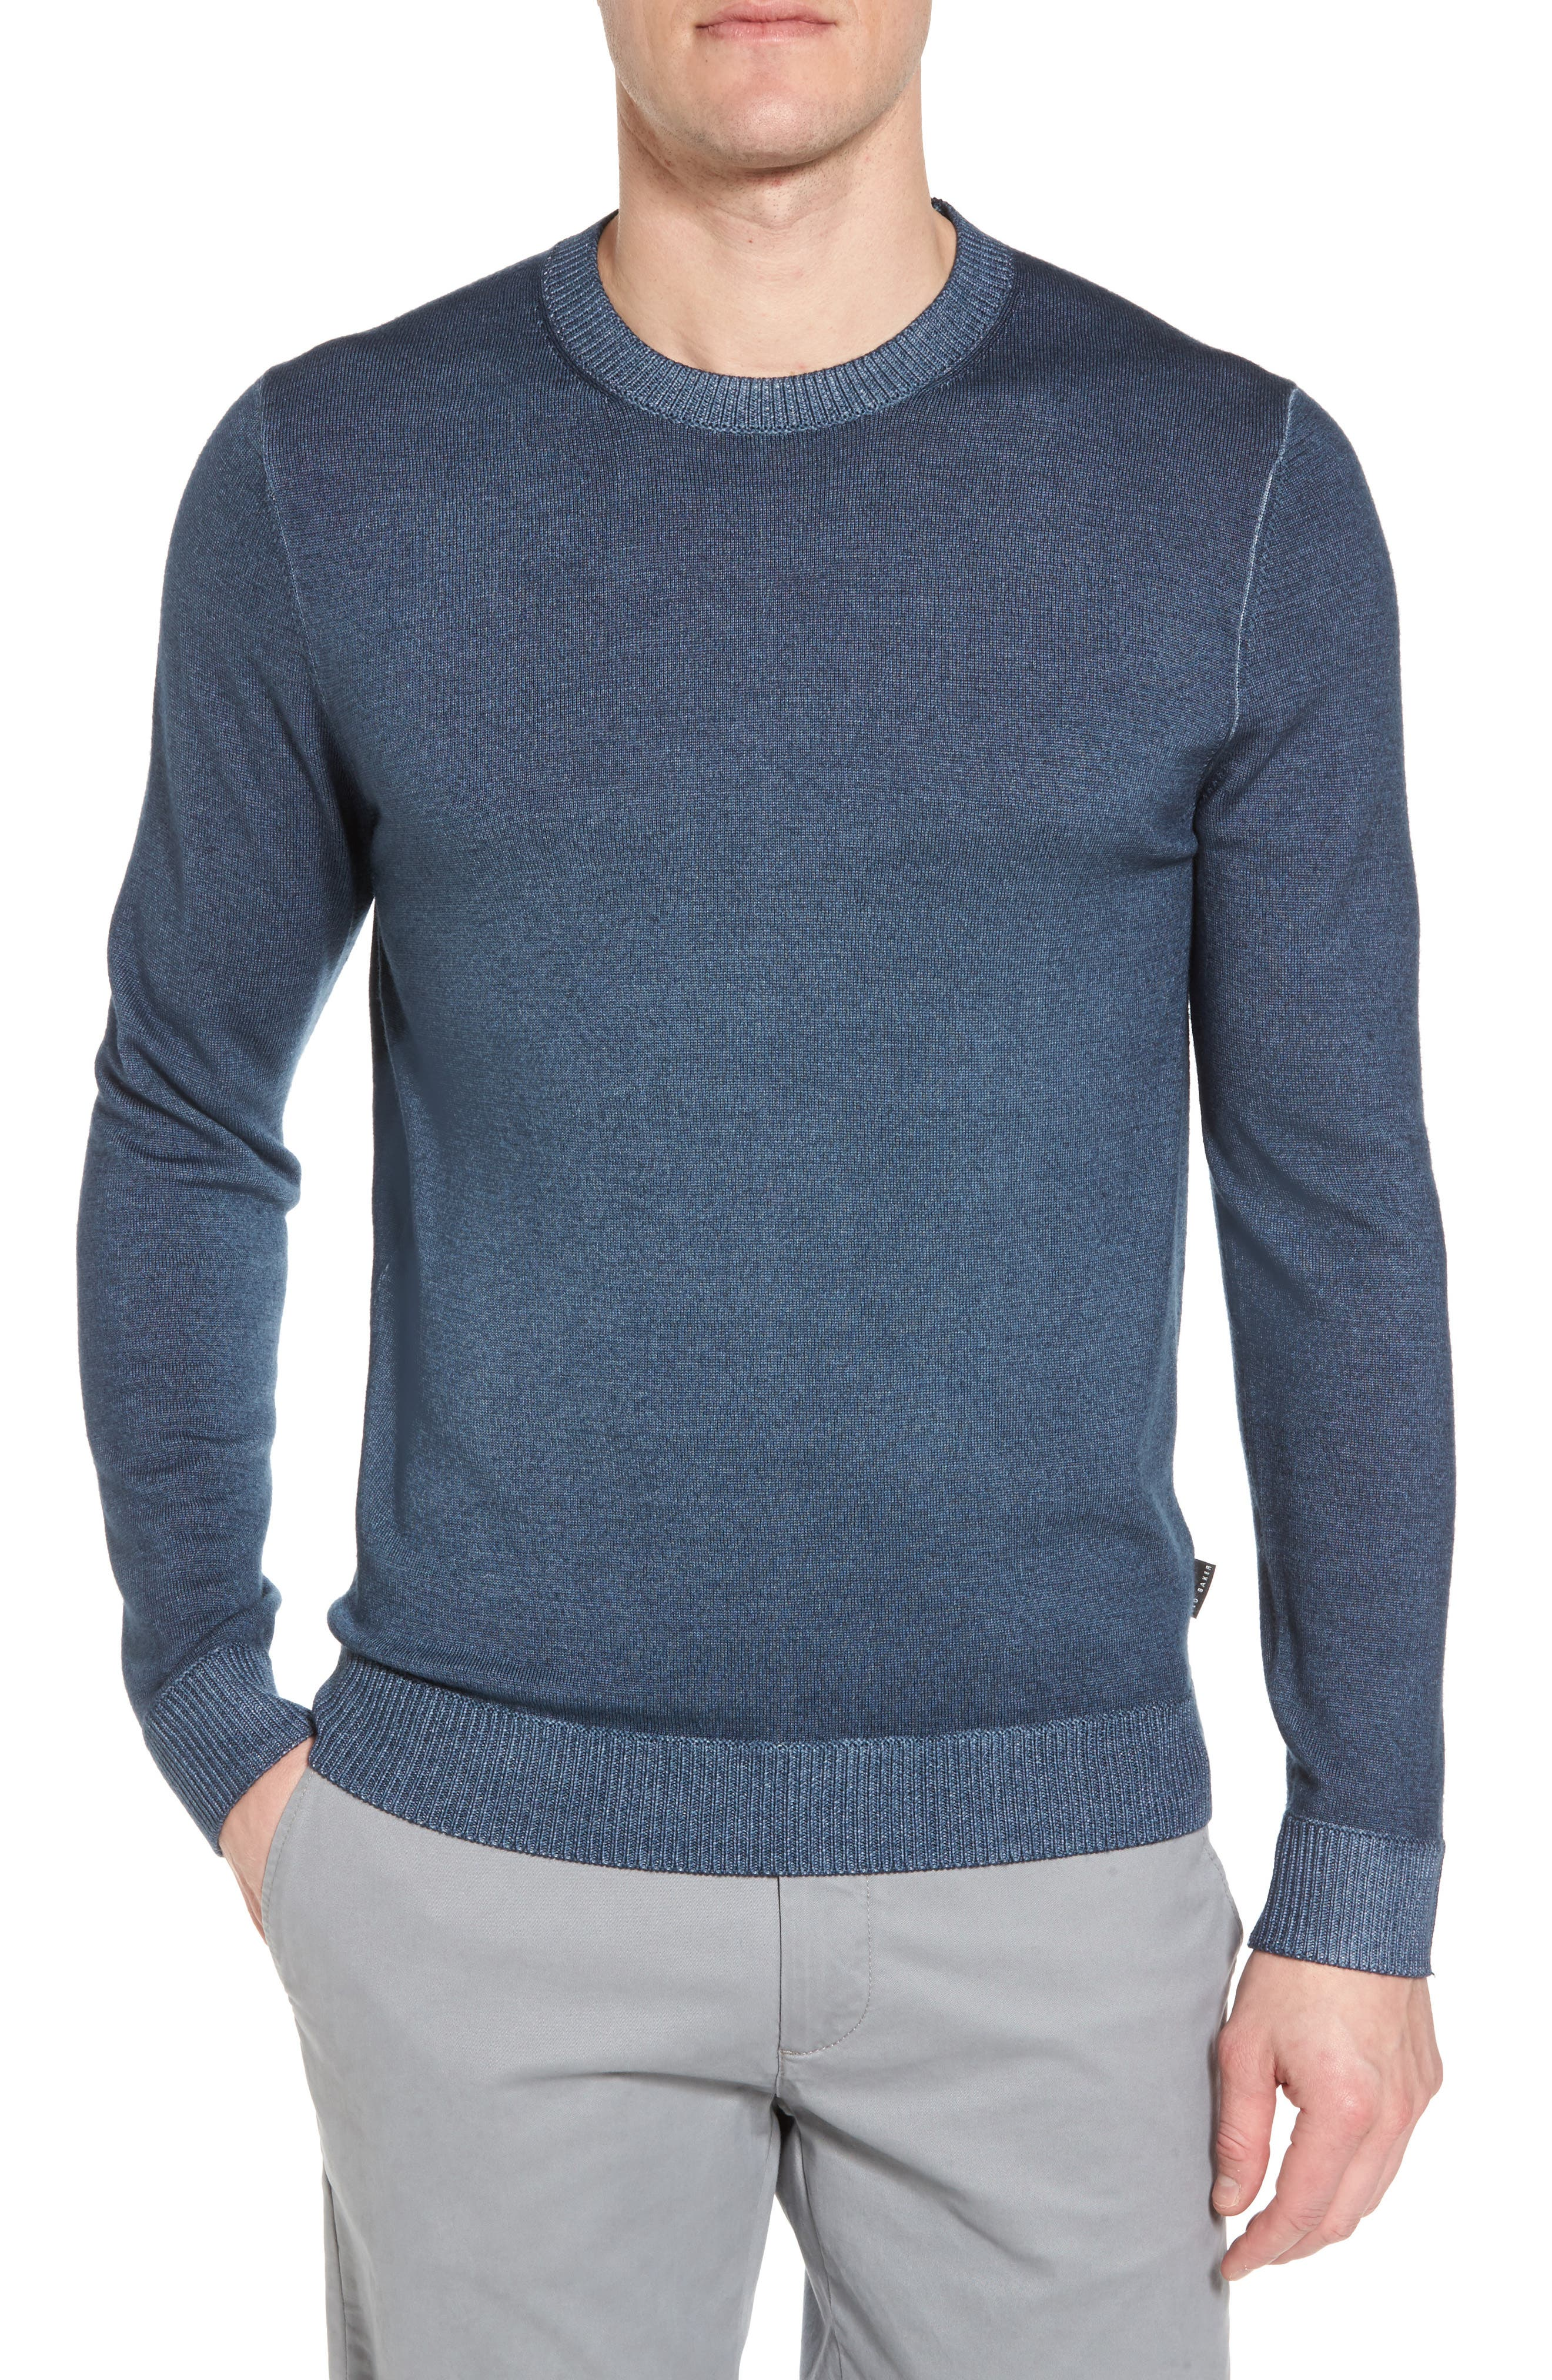 Lucky Trim Fit Wool Sweater,                         Main,                         color, 420